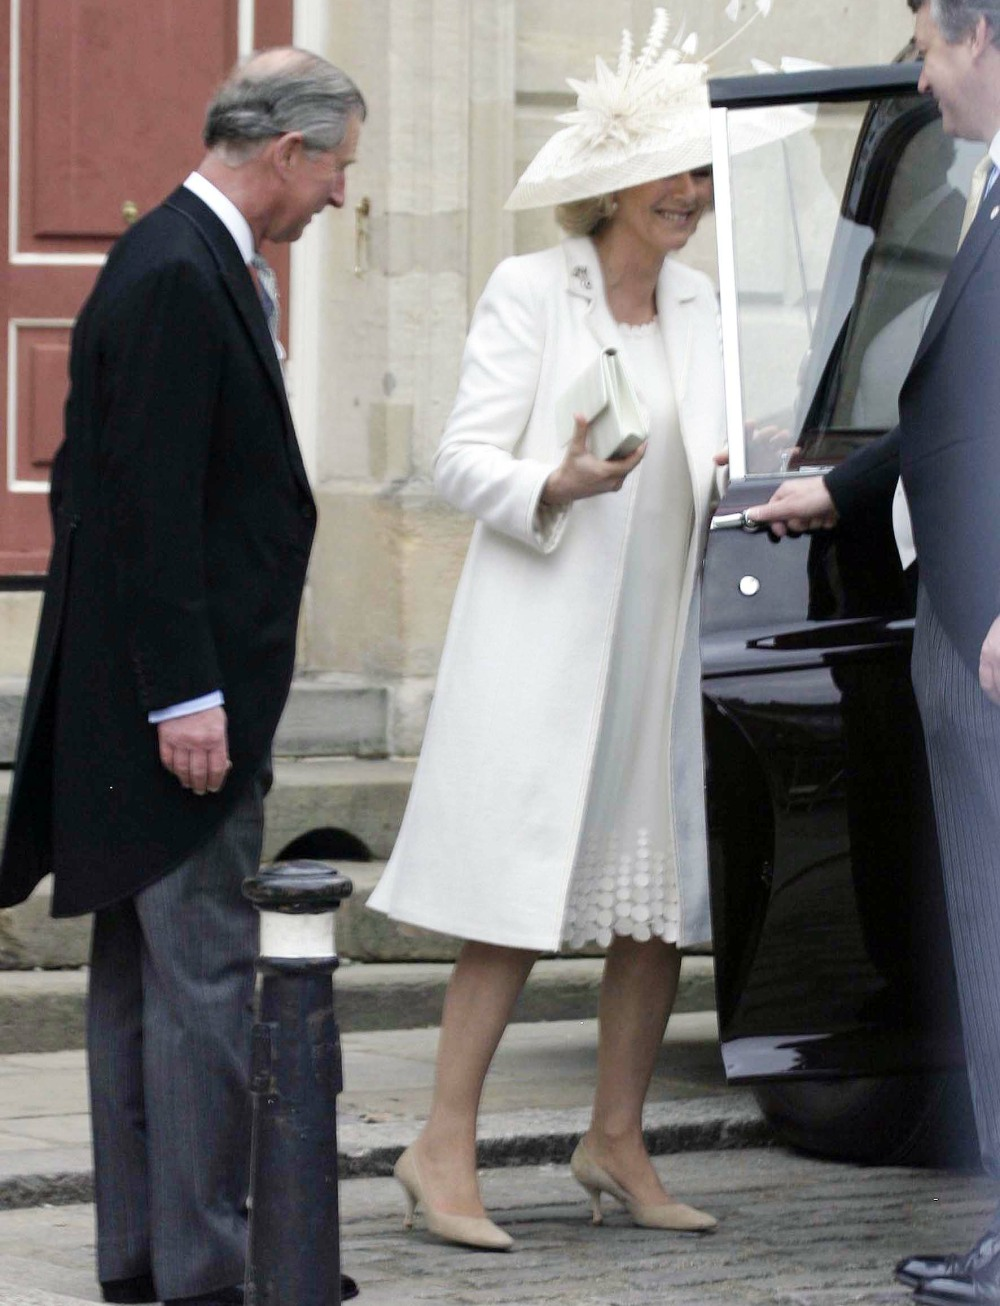 WEDDING OF HRH PRINCE CHARLES TO MRS CAMILLA PARKER BOWLES.